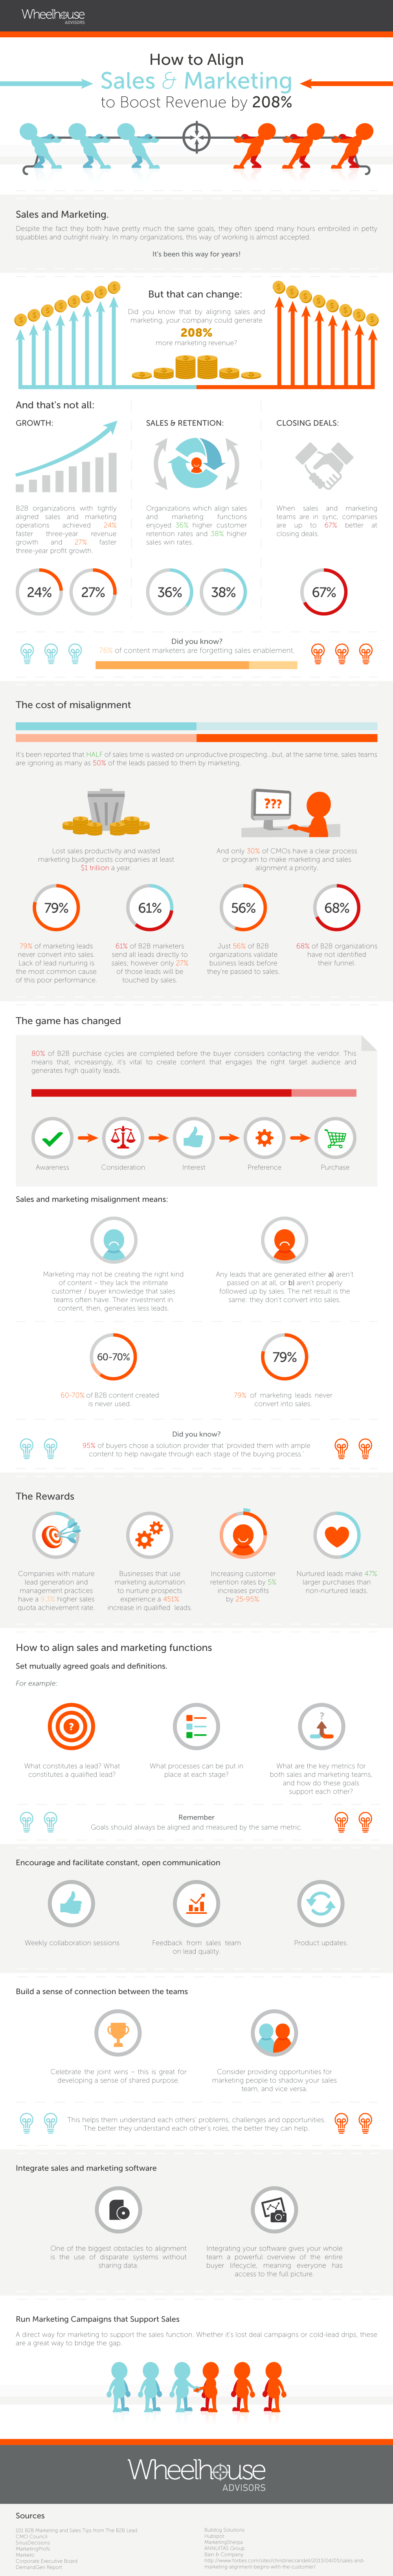 WHA-Infographic-How-to-Align-Sales-Marketing-to-Bost-Revenue-V3